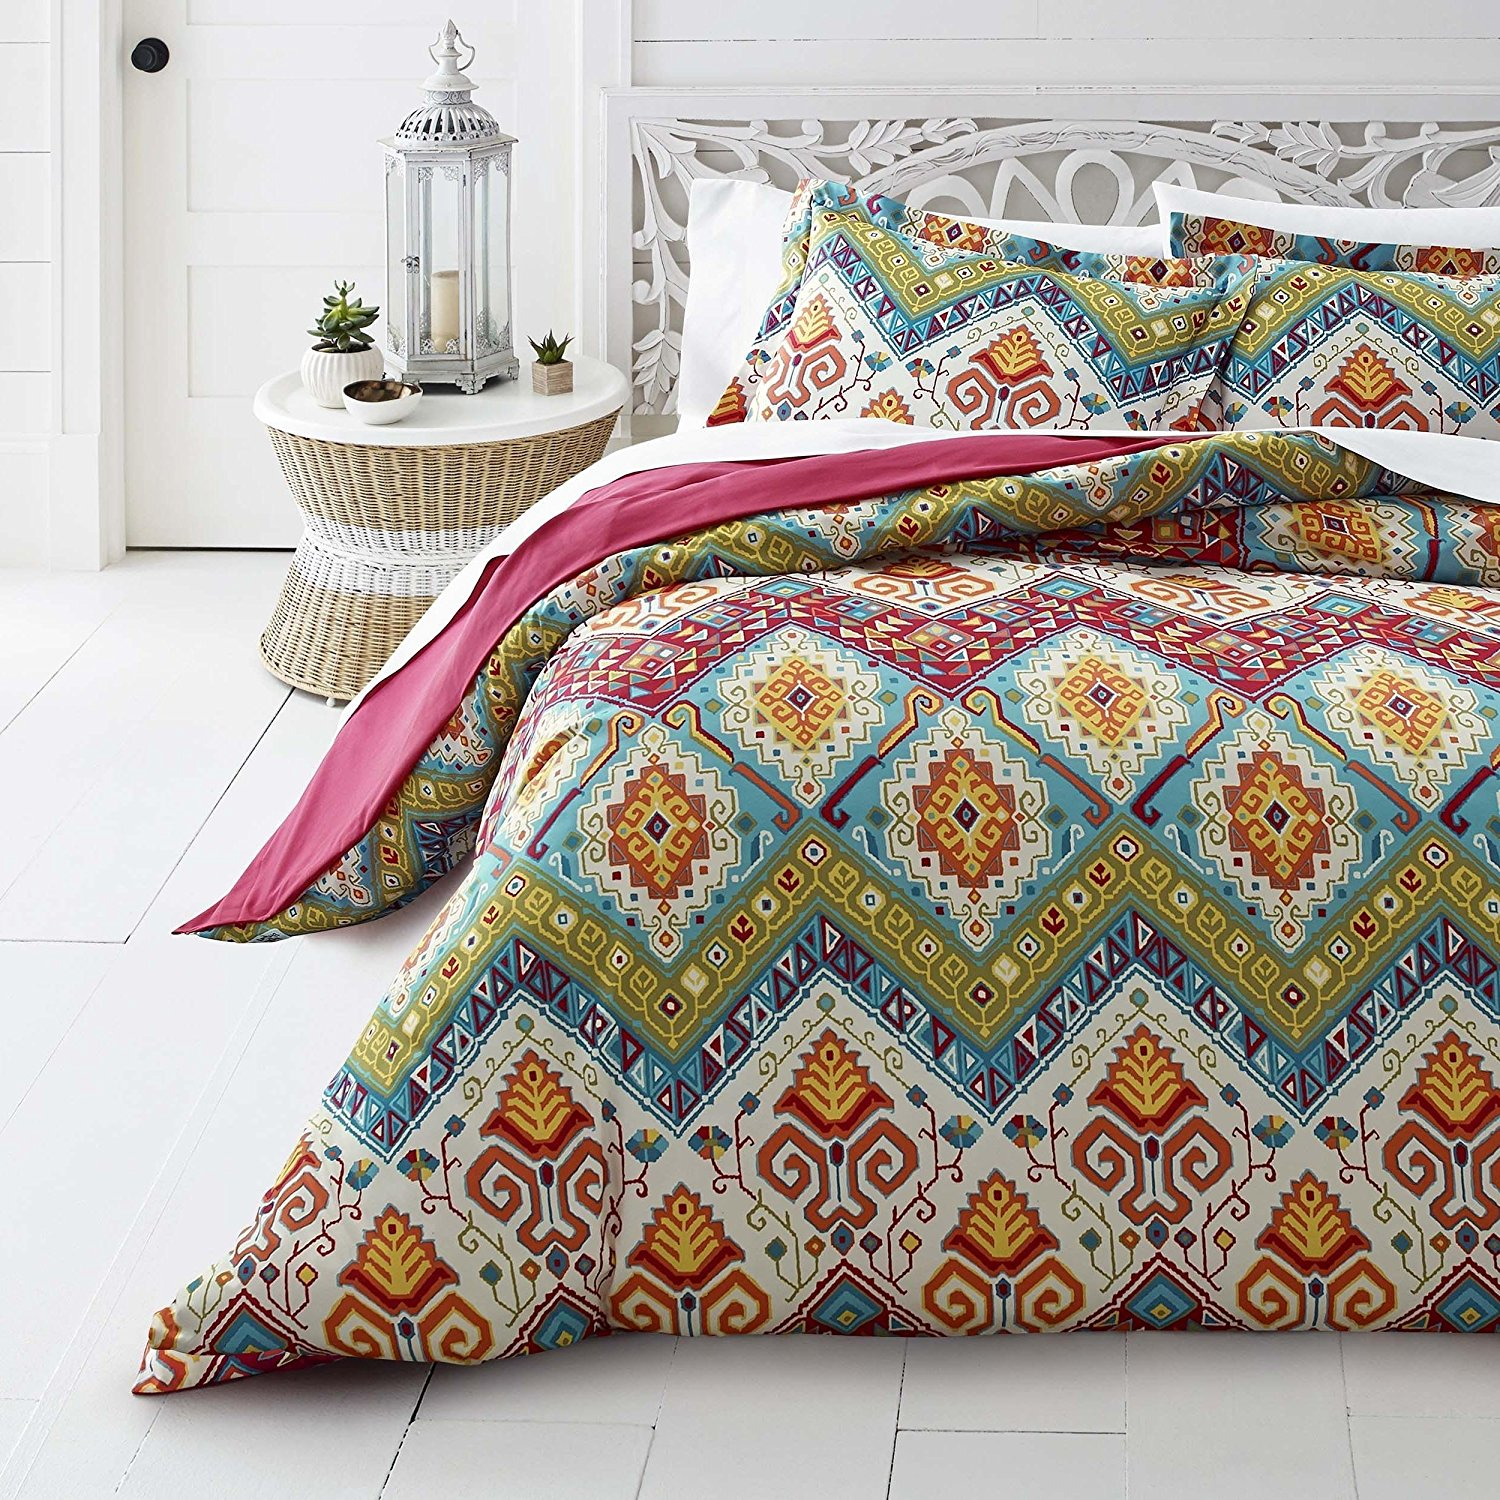 3 Piece Beautiful Red Green Orange White Blue Full Queen Duvet Cover Set, Moroccan Paisley Themed Reversible Bedding Vibrant Aztec Yellow Purple Bohemian Boho Geometric Medallion Abstract, Microfiber